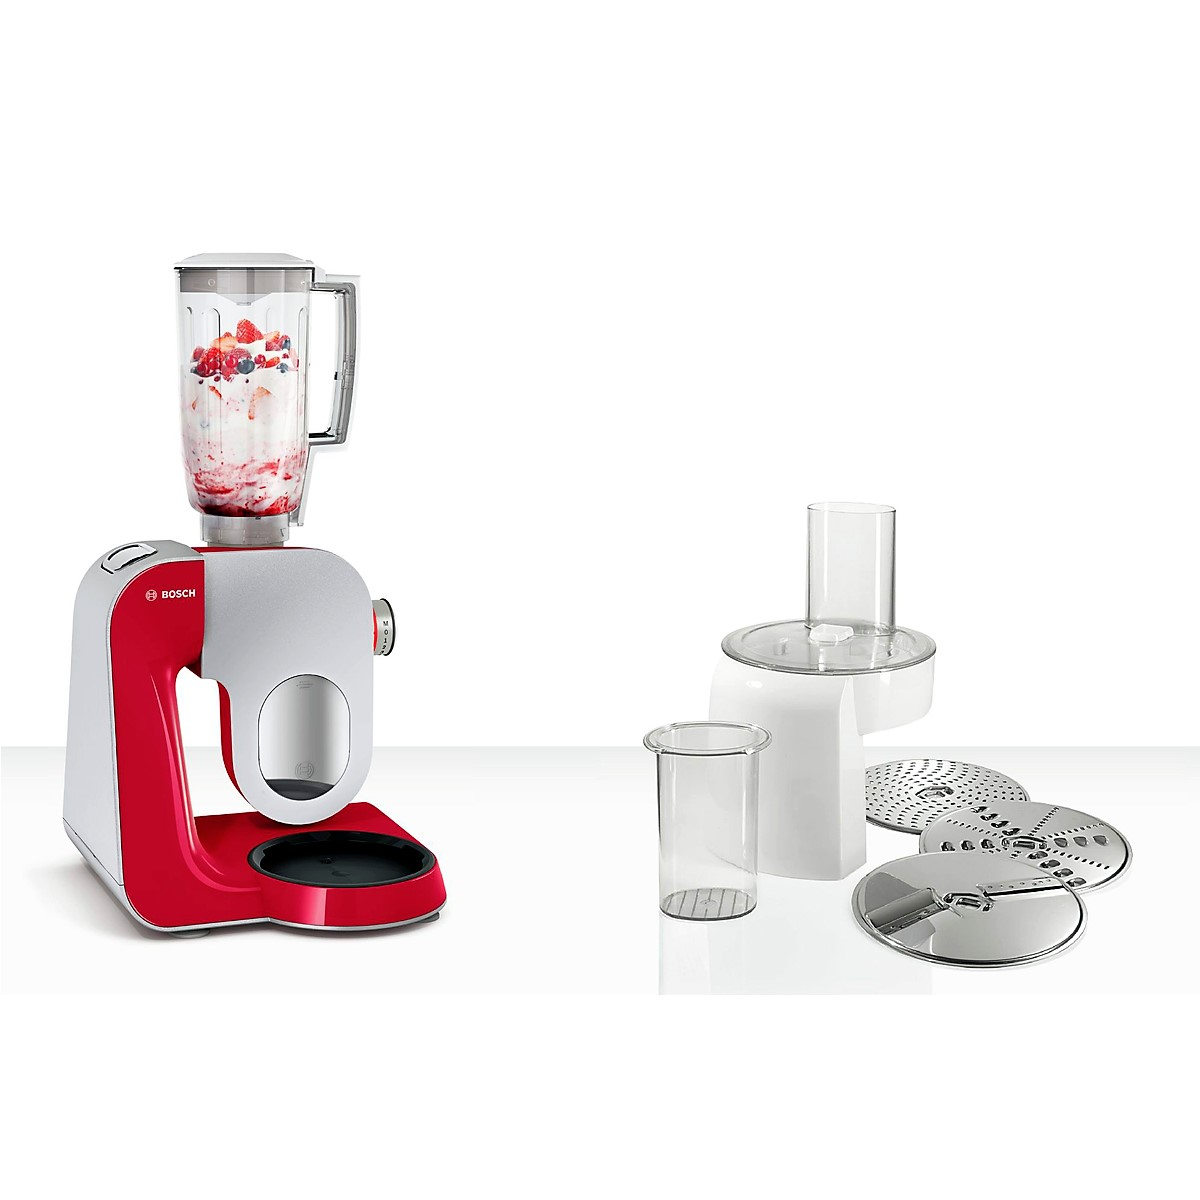 Bosch - Kitchen Machine MUM5 Styline Colour red silver 2